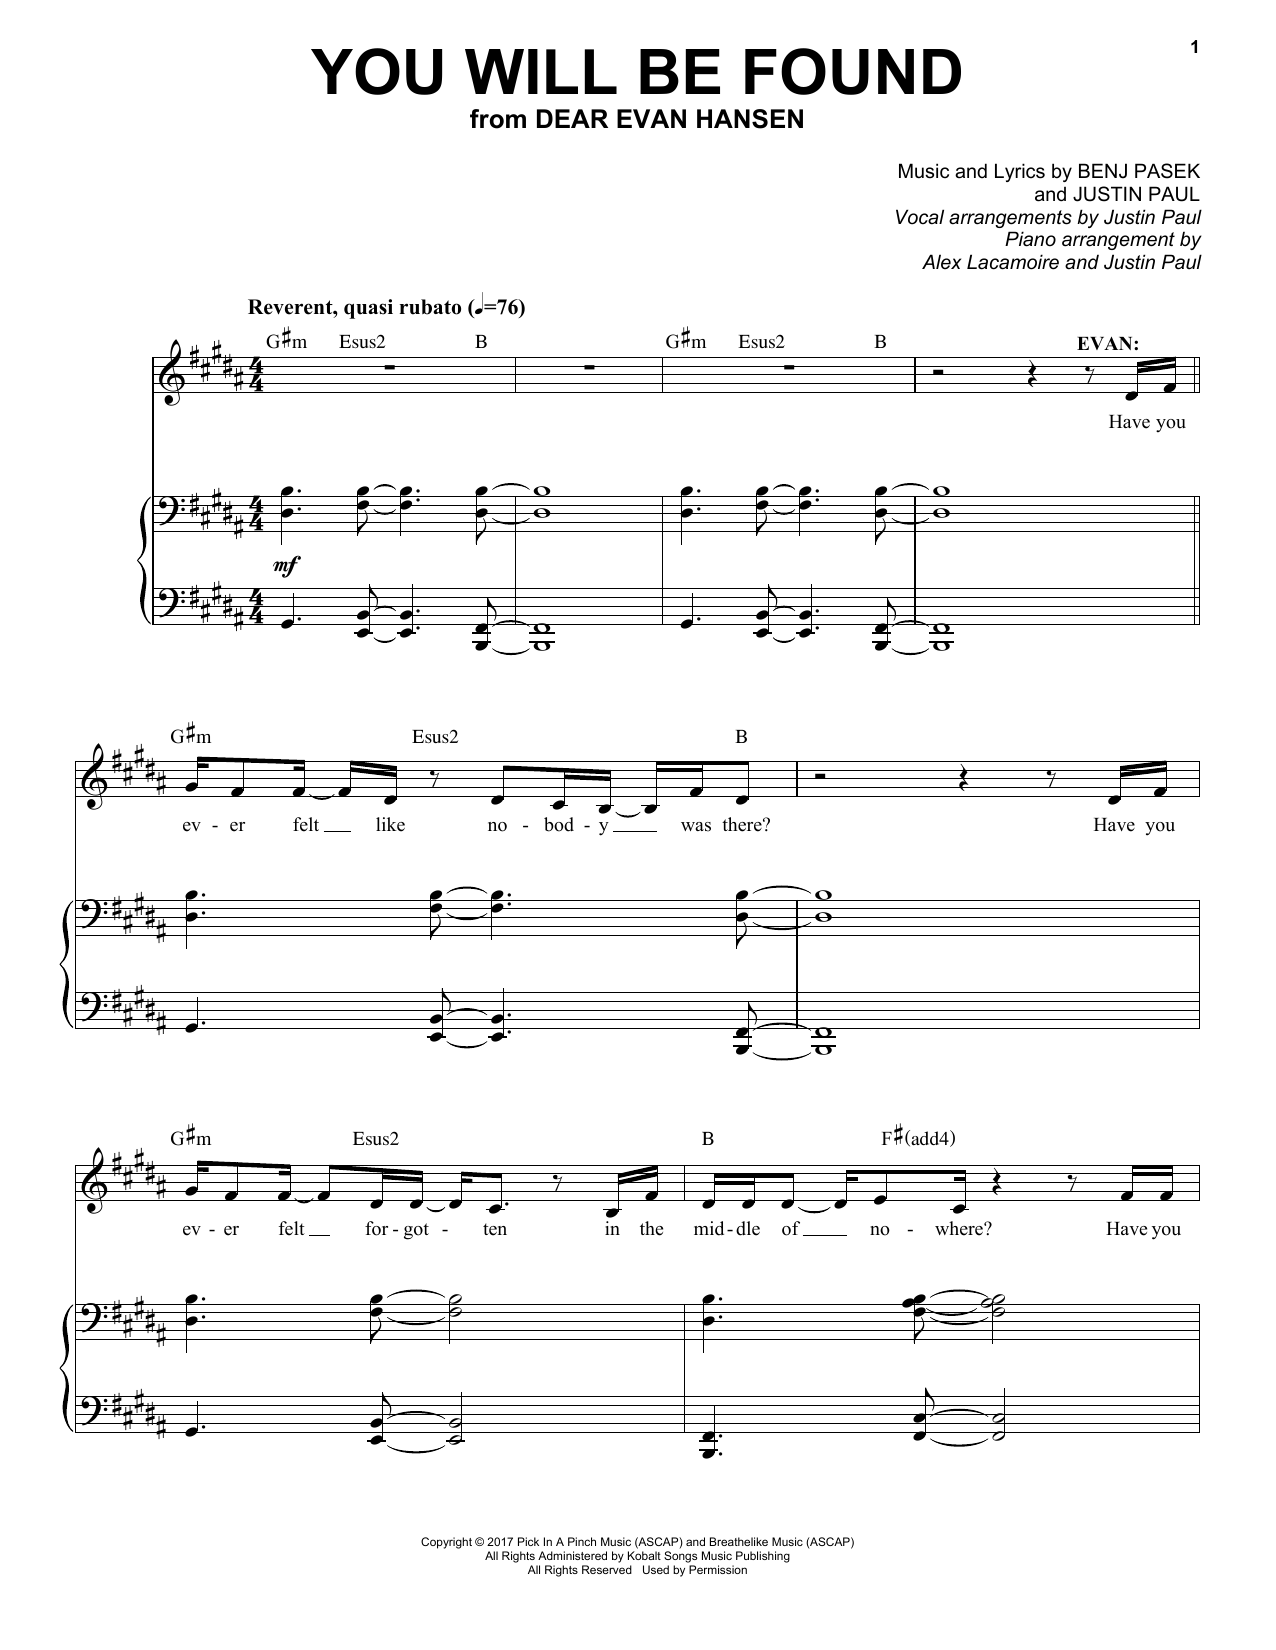 You Will Be Found From Dear Evan Hansen Sheet Music Pasek Paul Piano Vocal Download and print in pdf or midi free sheet music for you will be found (dear evan hansen) arranged by emgray03 for piano, vocals. you will be found from dear evan hansen sheet music pasek paul piano vocal